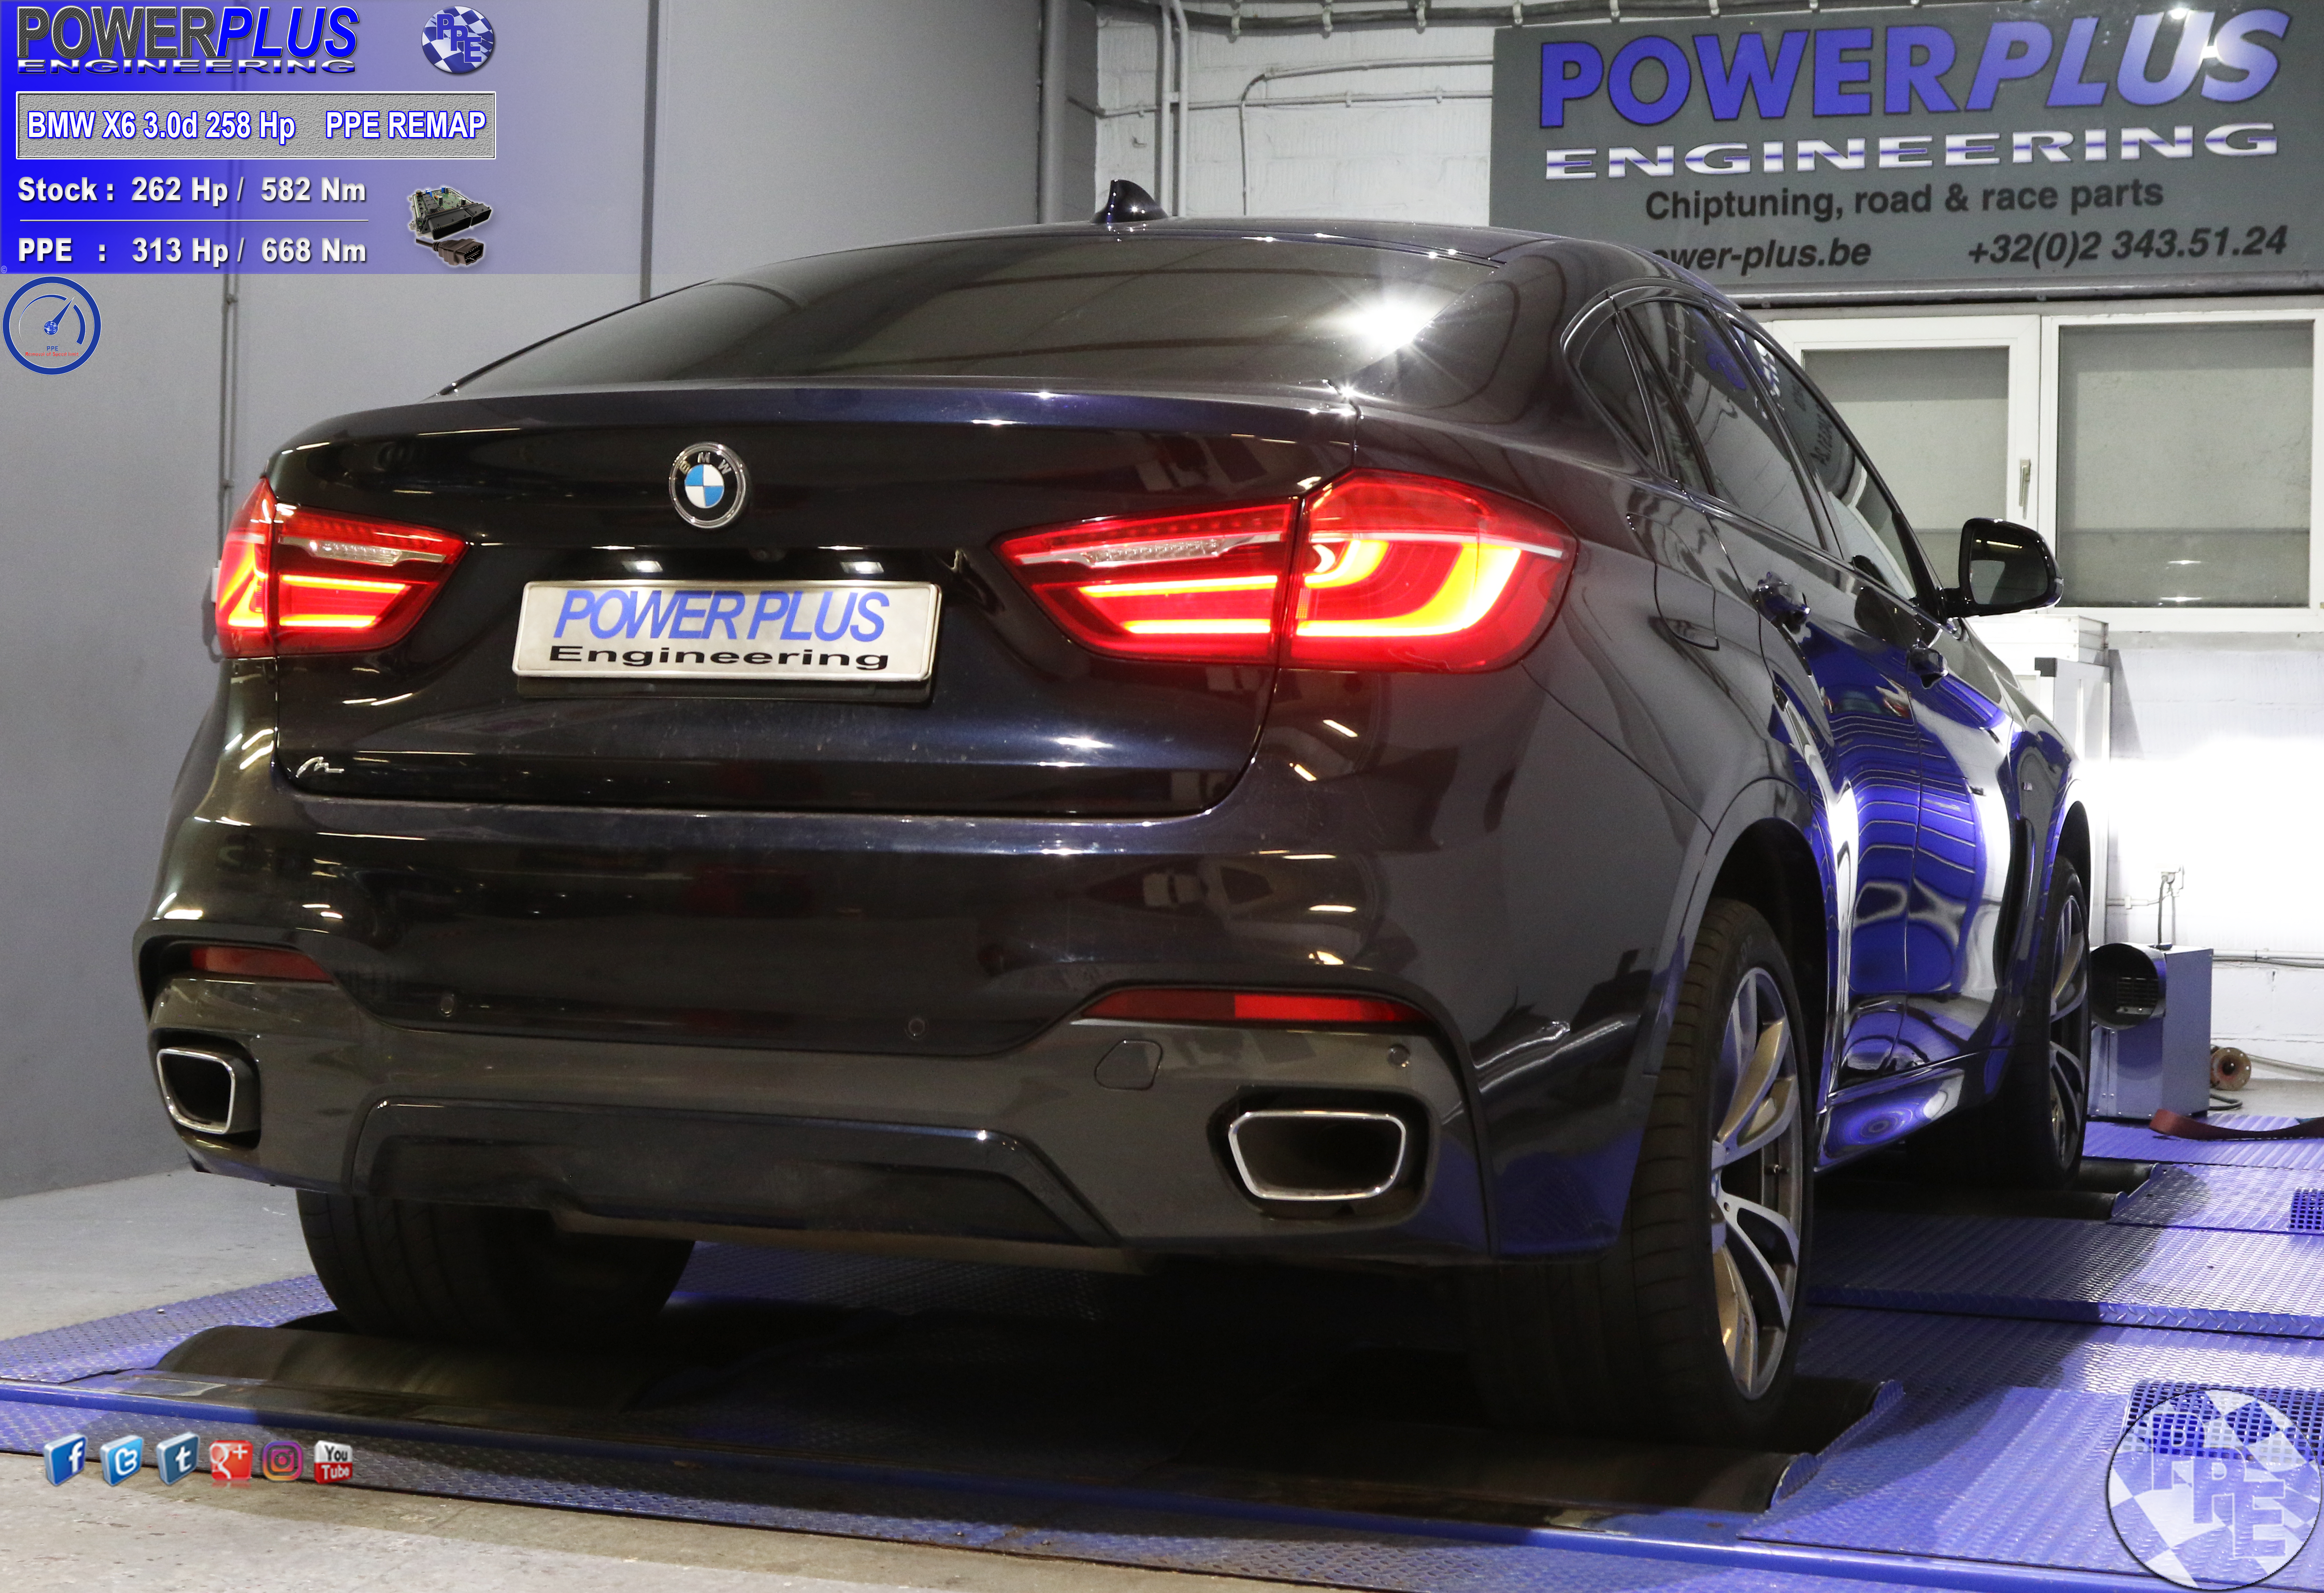 BMW X6 3 0d 258 hp remapped to 313 Hp & 668 Nm